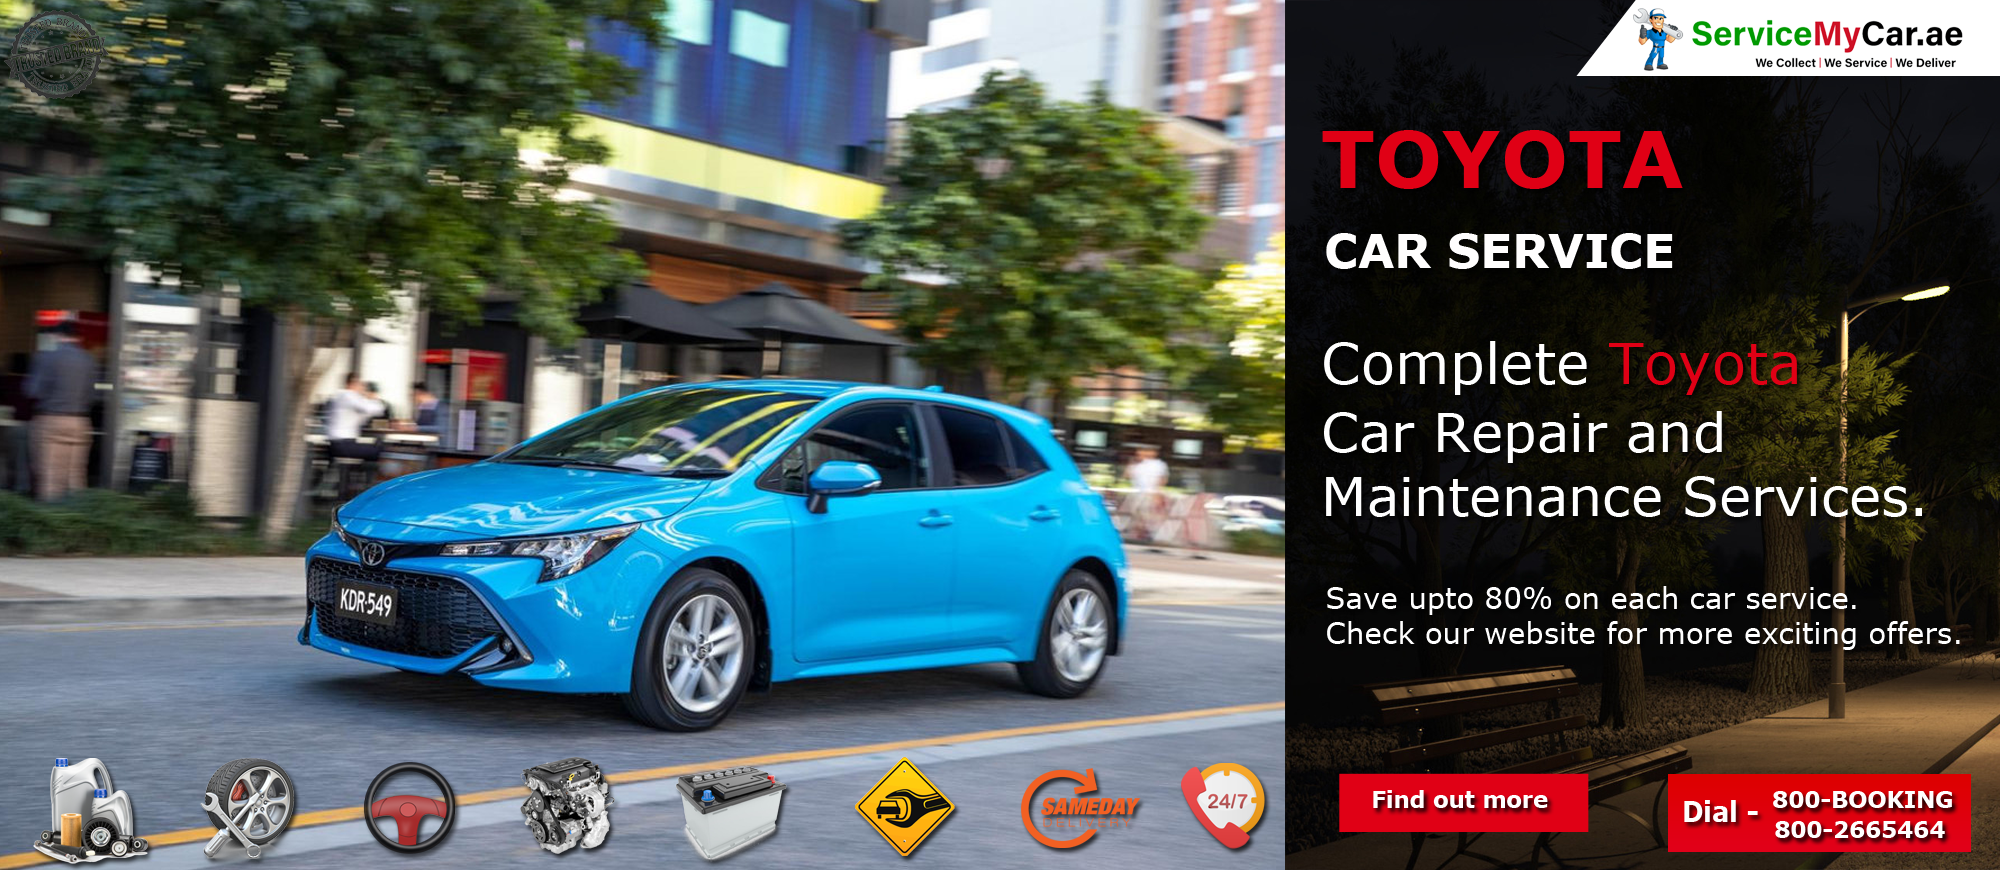 Save Up To 80 On Your Toyota Repairing And Servicing In The Uae Choose The Package From Servicemycar Website And Save Your Money By Dubai Cars Toyota Repair